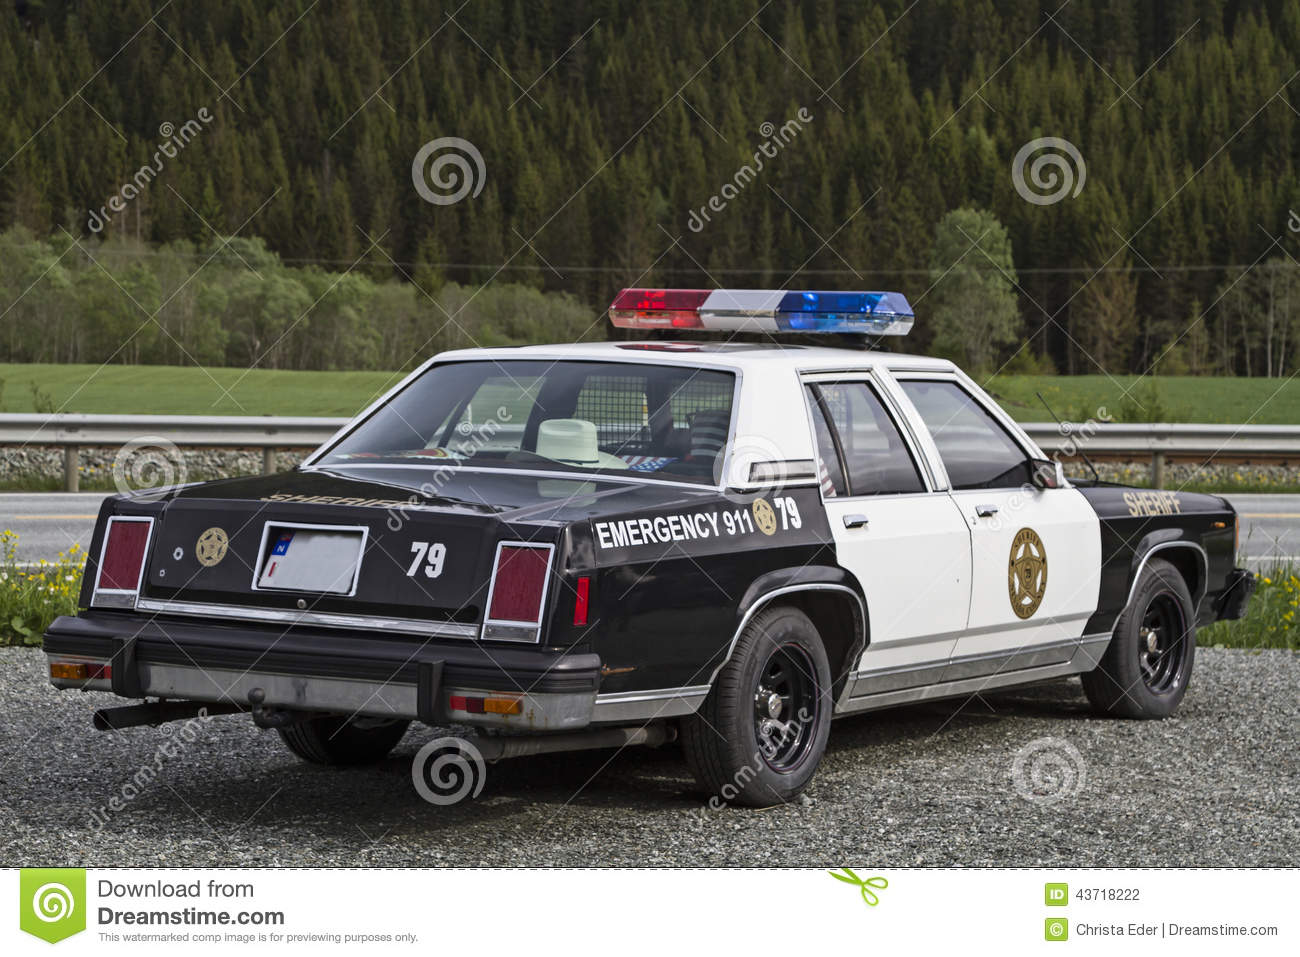 Old Police Car Stock Photo - Image: 43718222